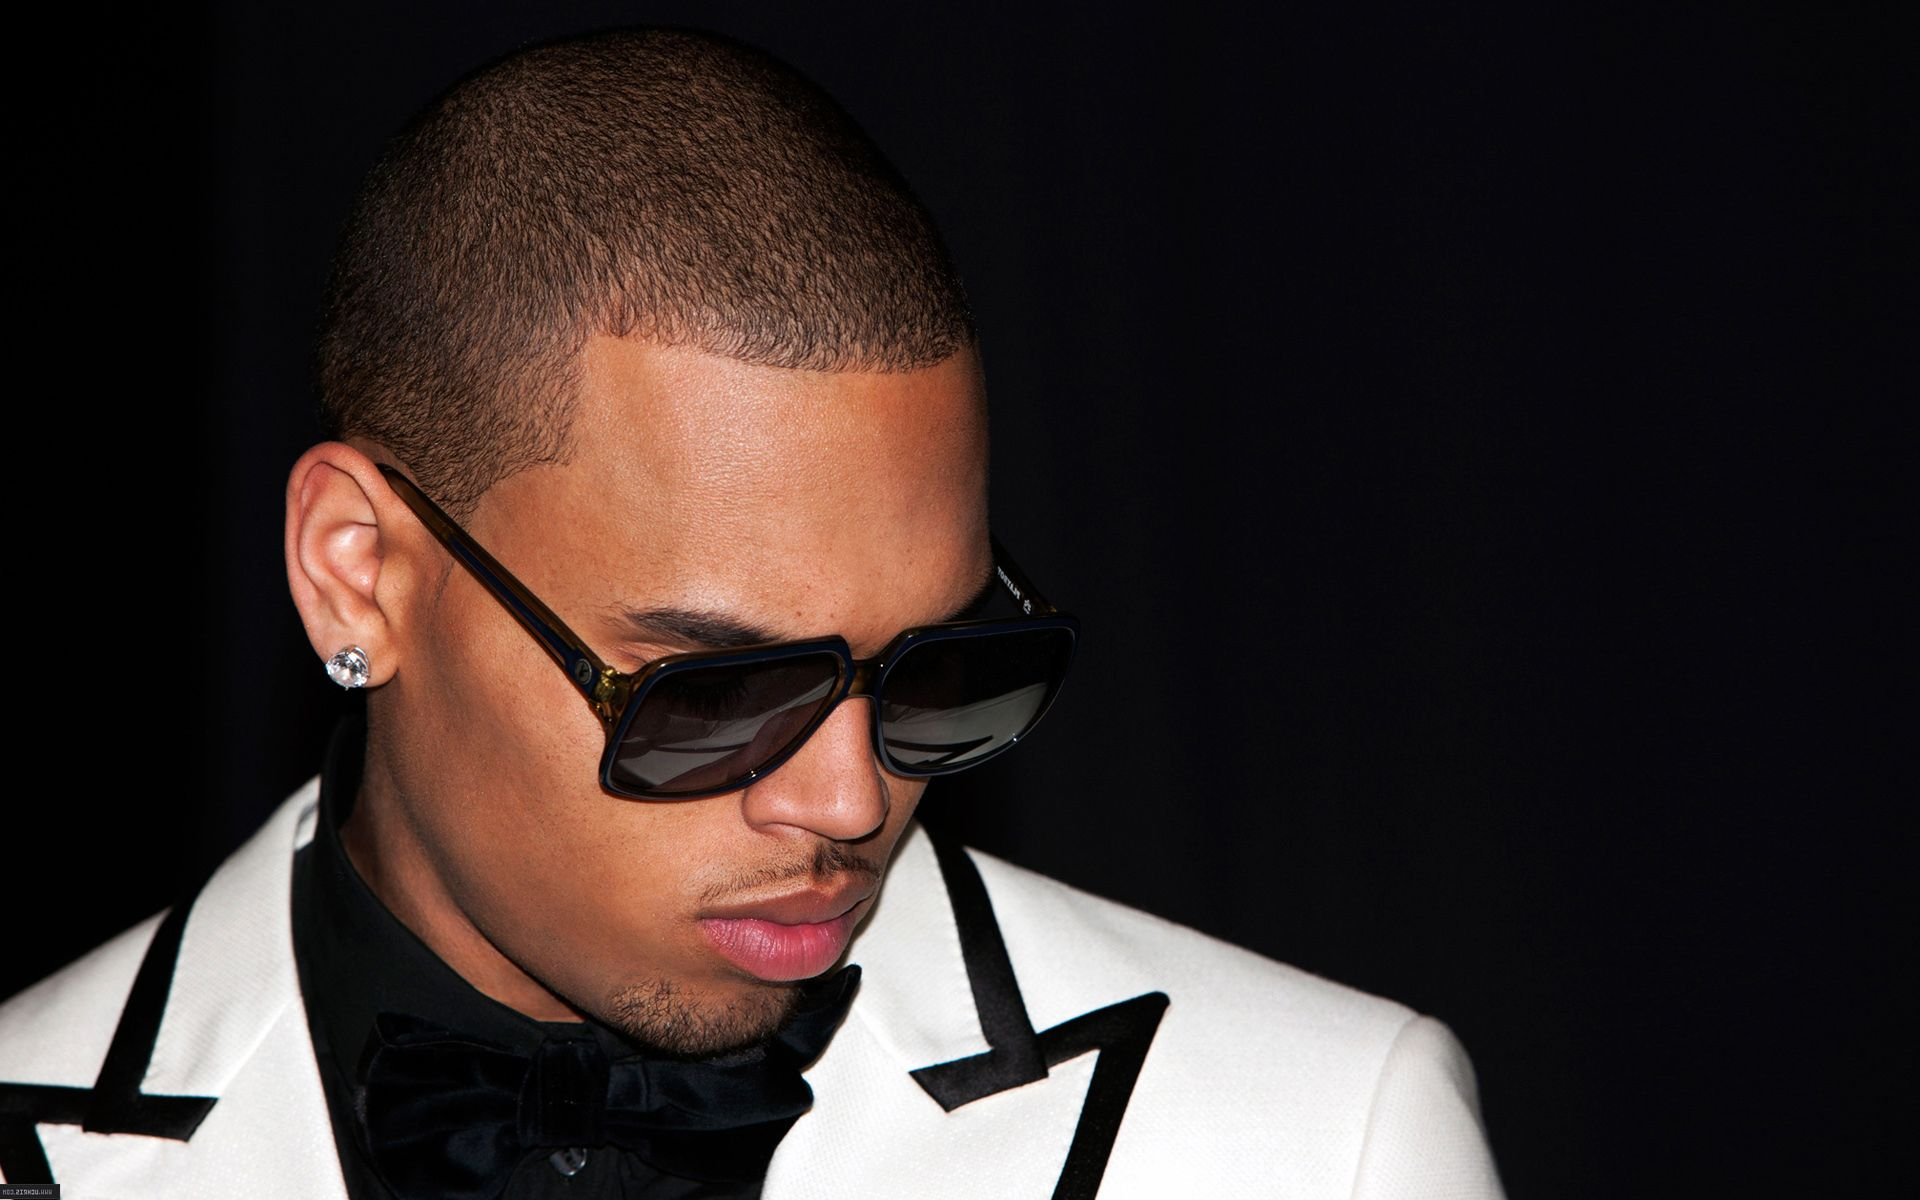 Chris Brown wallpaper HD background download desktop